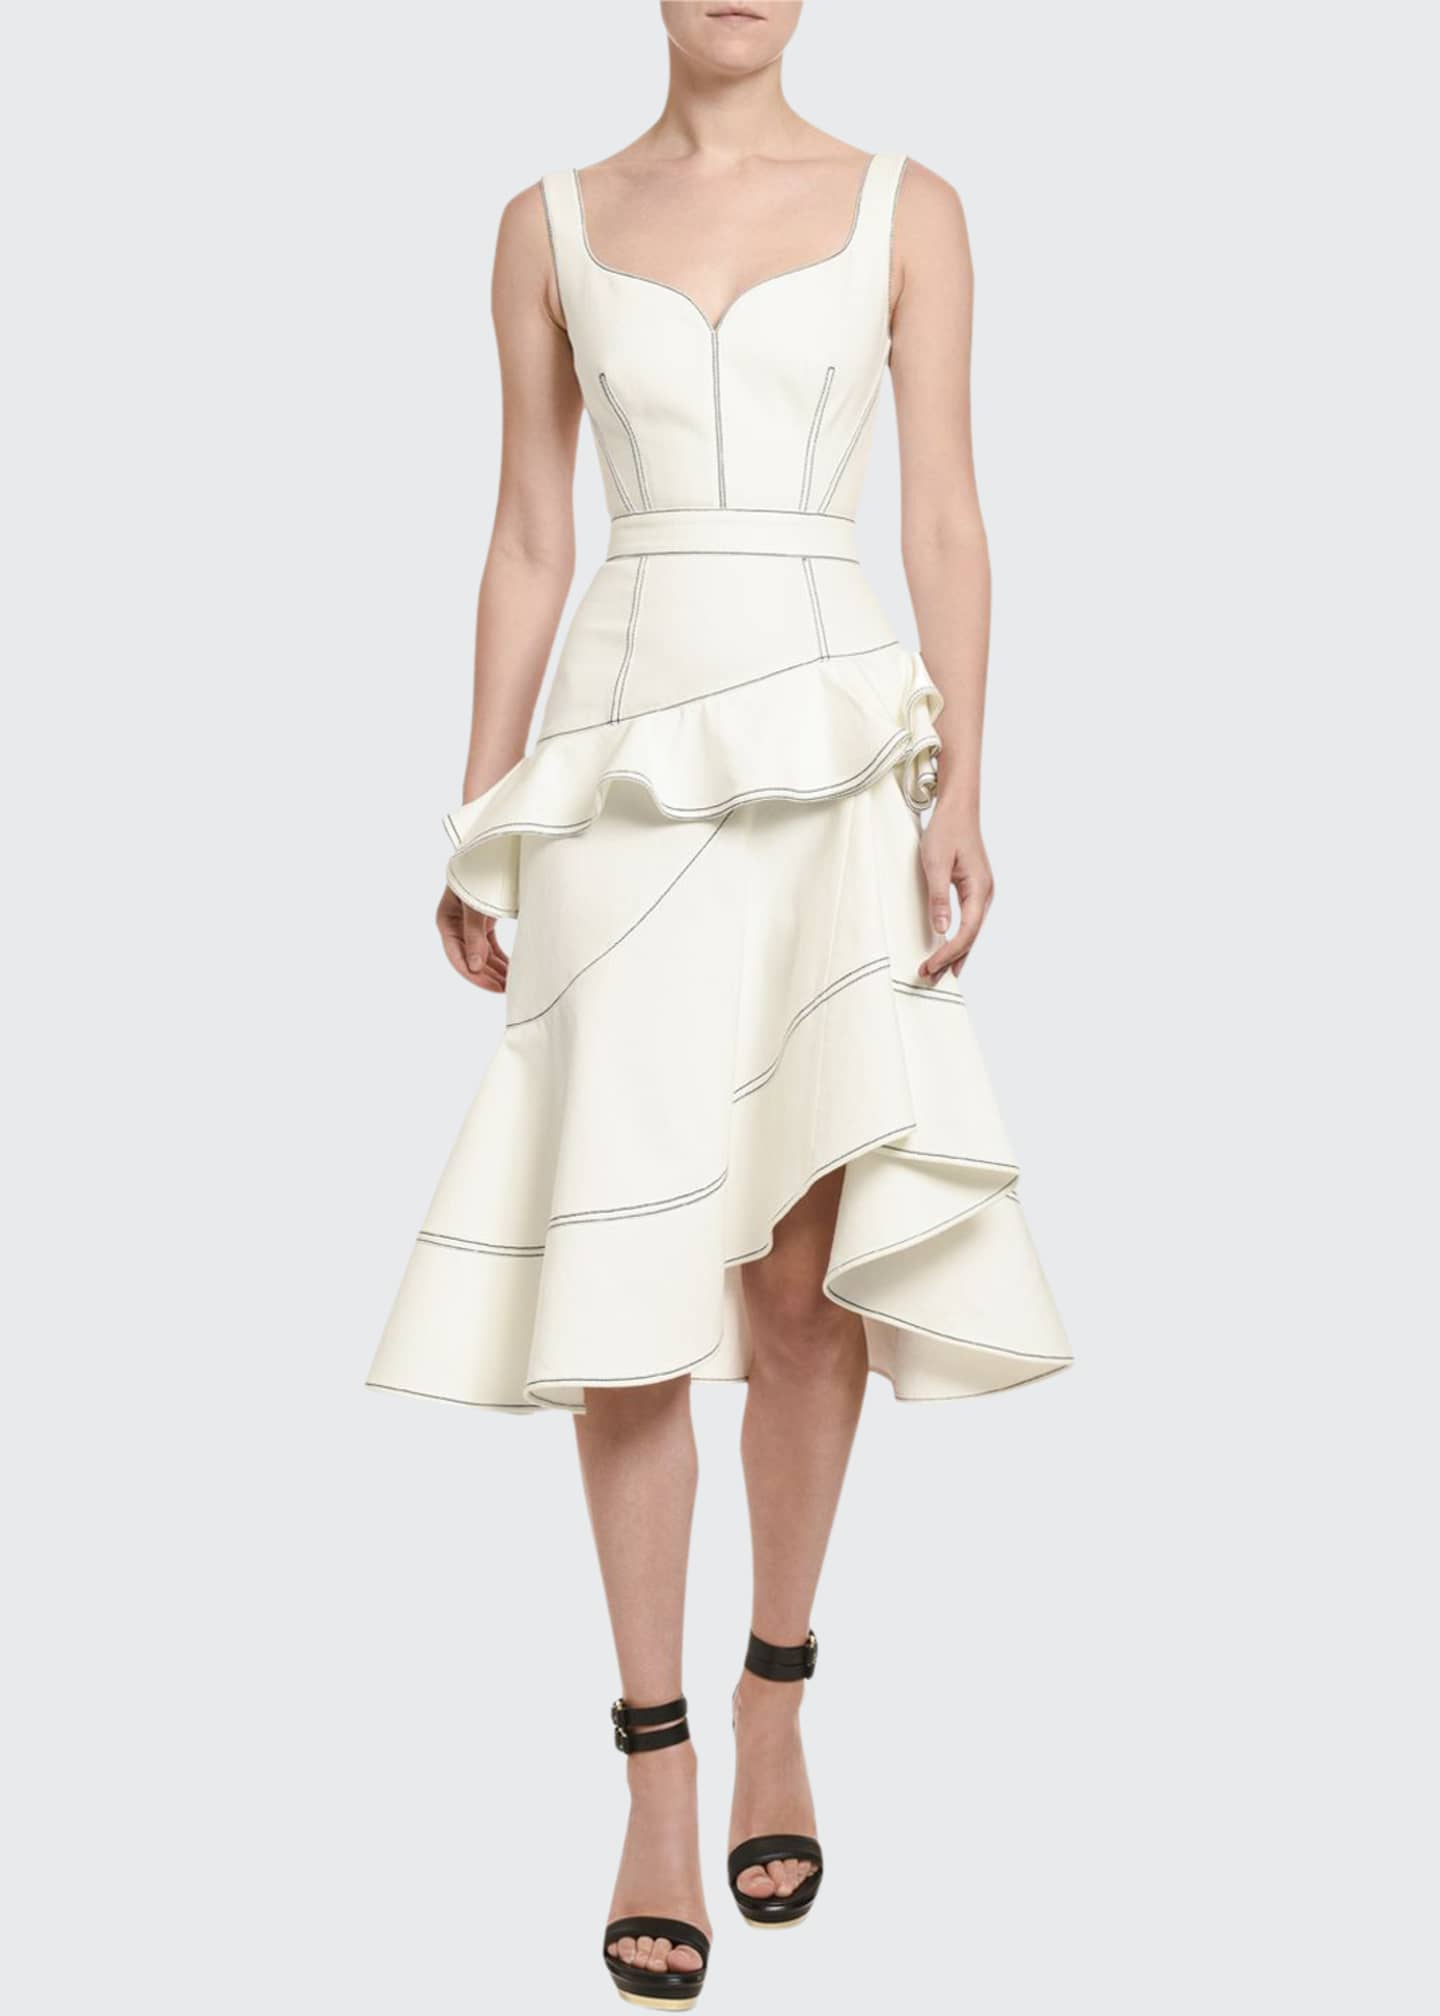 Alexander McQueen Contrast-Stitched Ruffle-Front Dress